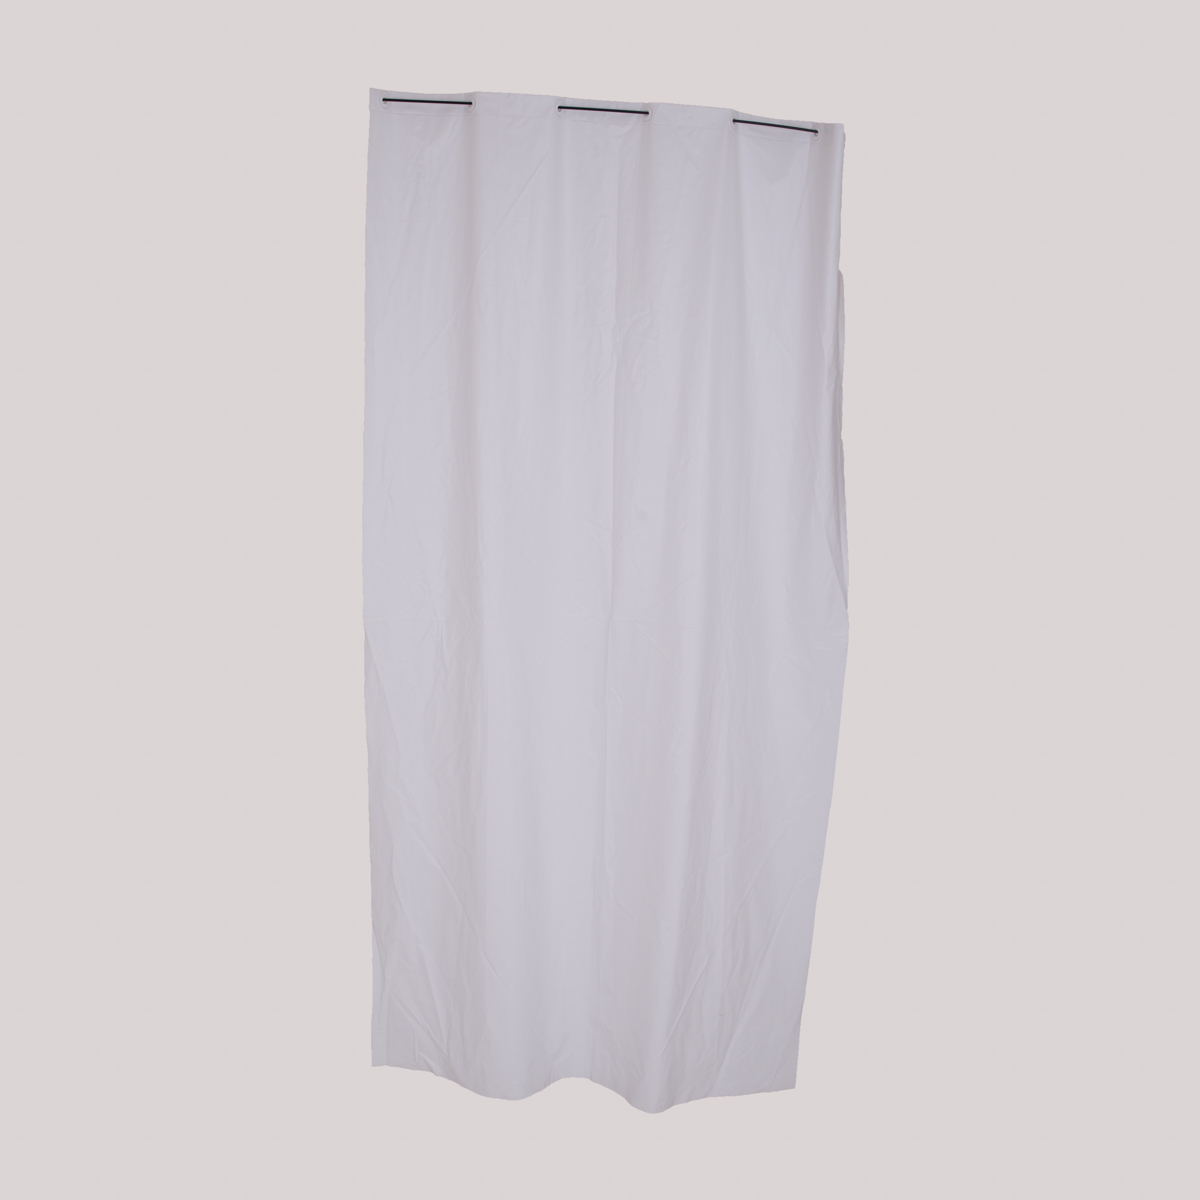 Medical Shower Curtains Pvc Shower Curtains Synrein Medical